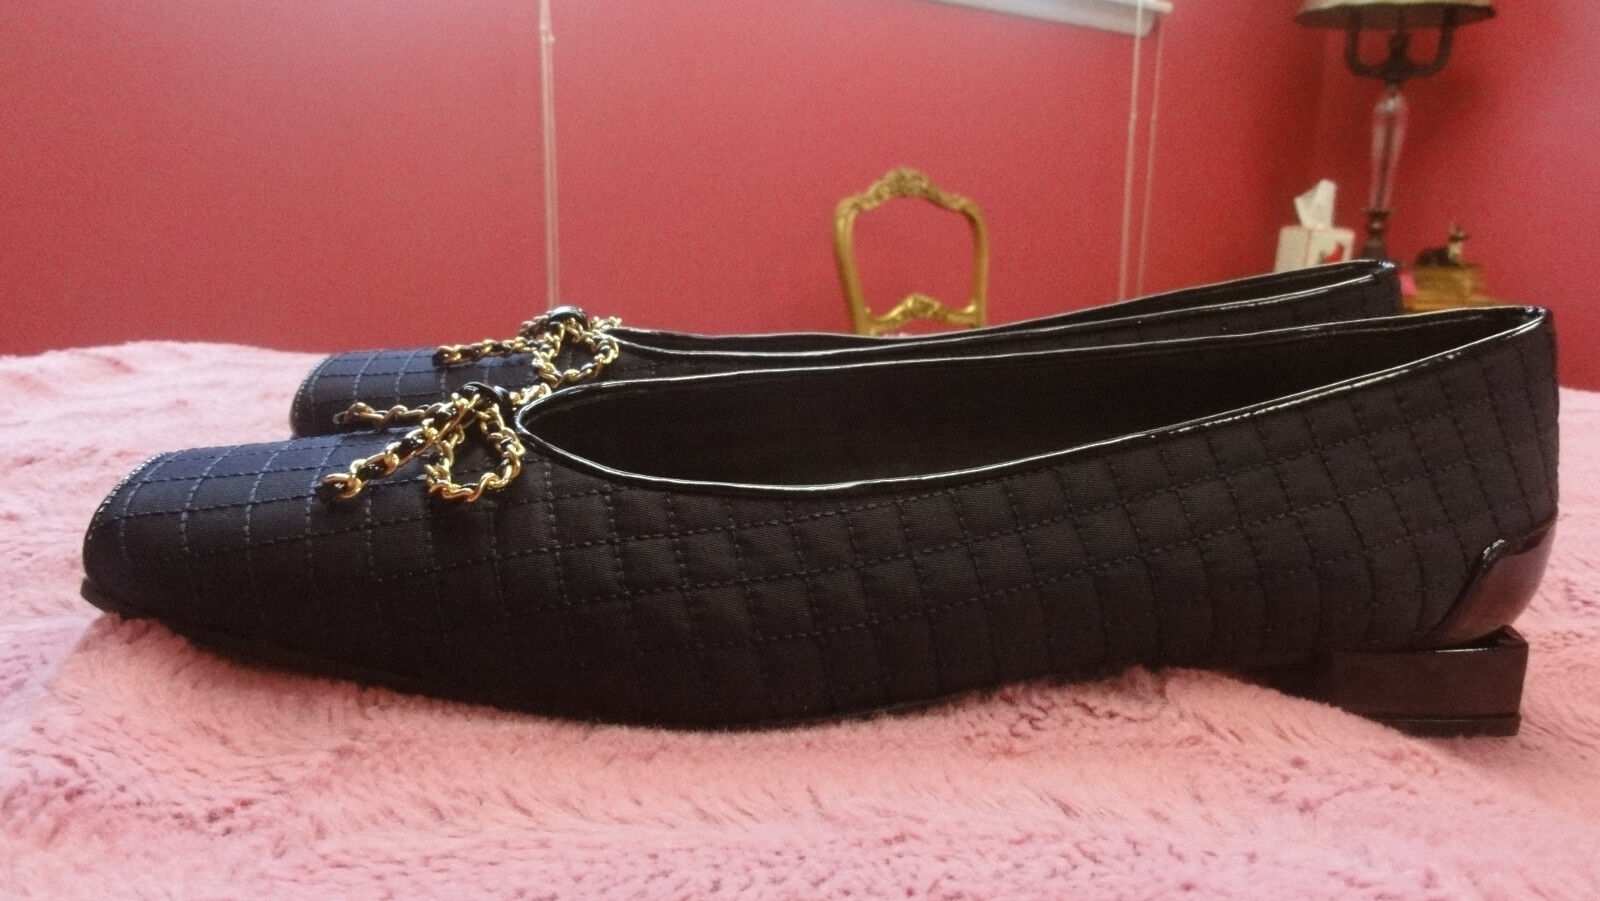 NEW STUART WEITZMAN BALLET FLATS FLATS FLATS NAVY BLACK QUILTED WITH BOWS SIZE 10 USA 11f274